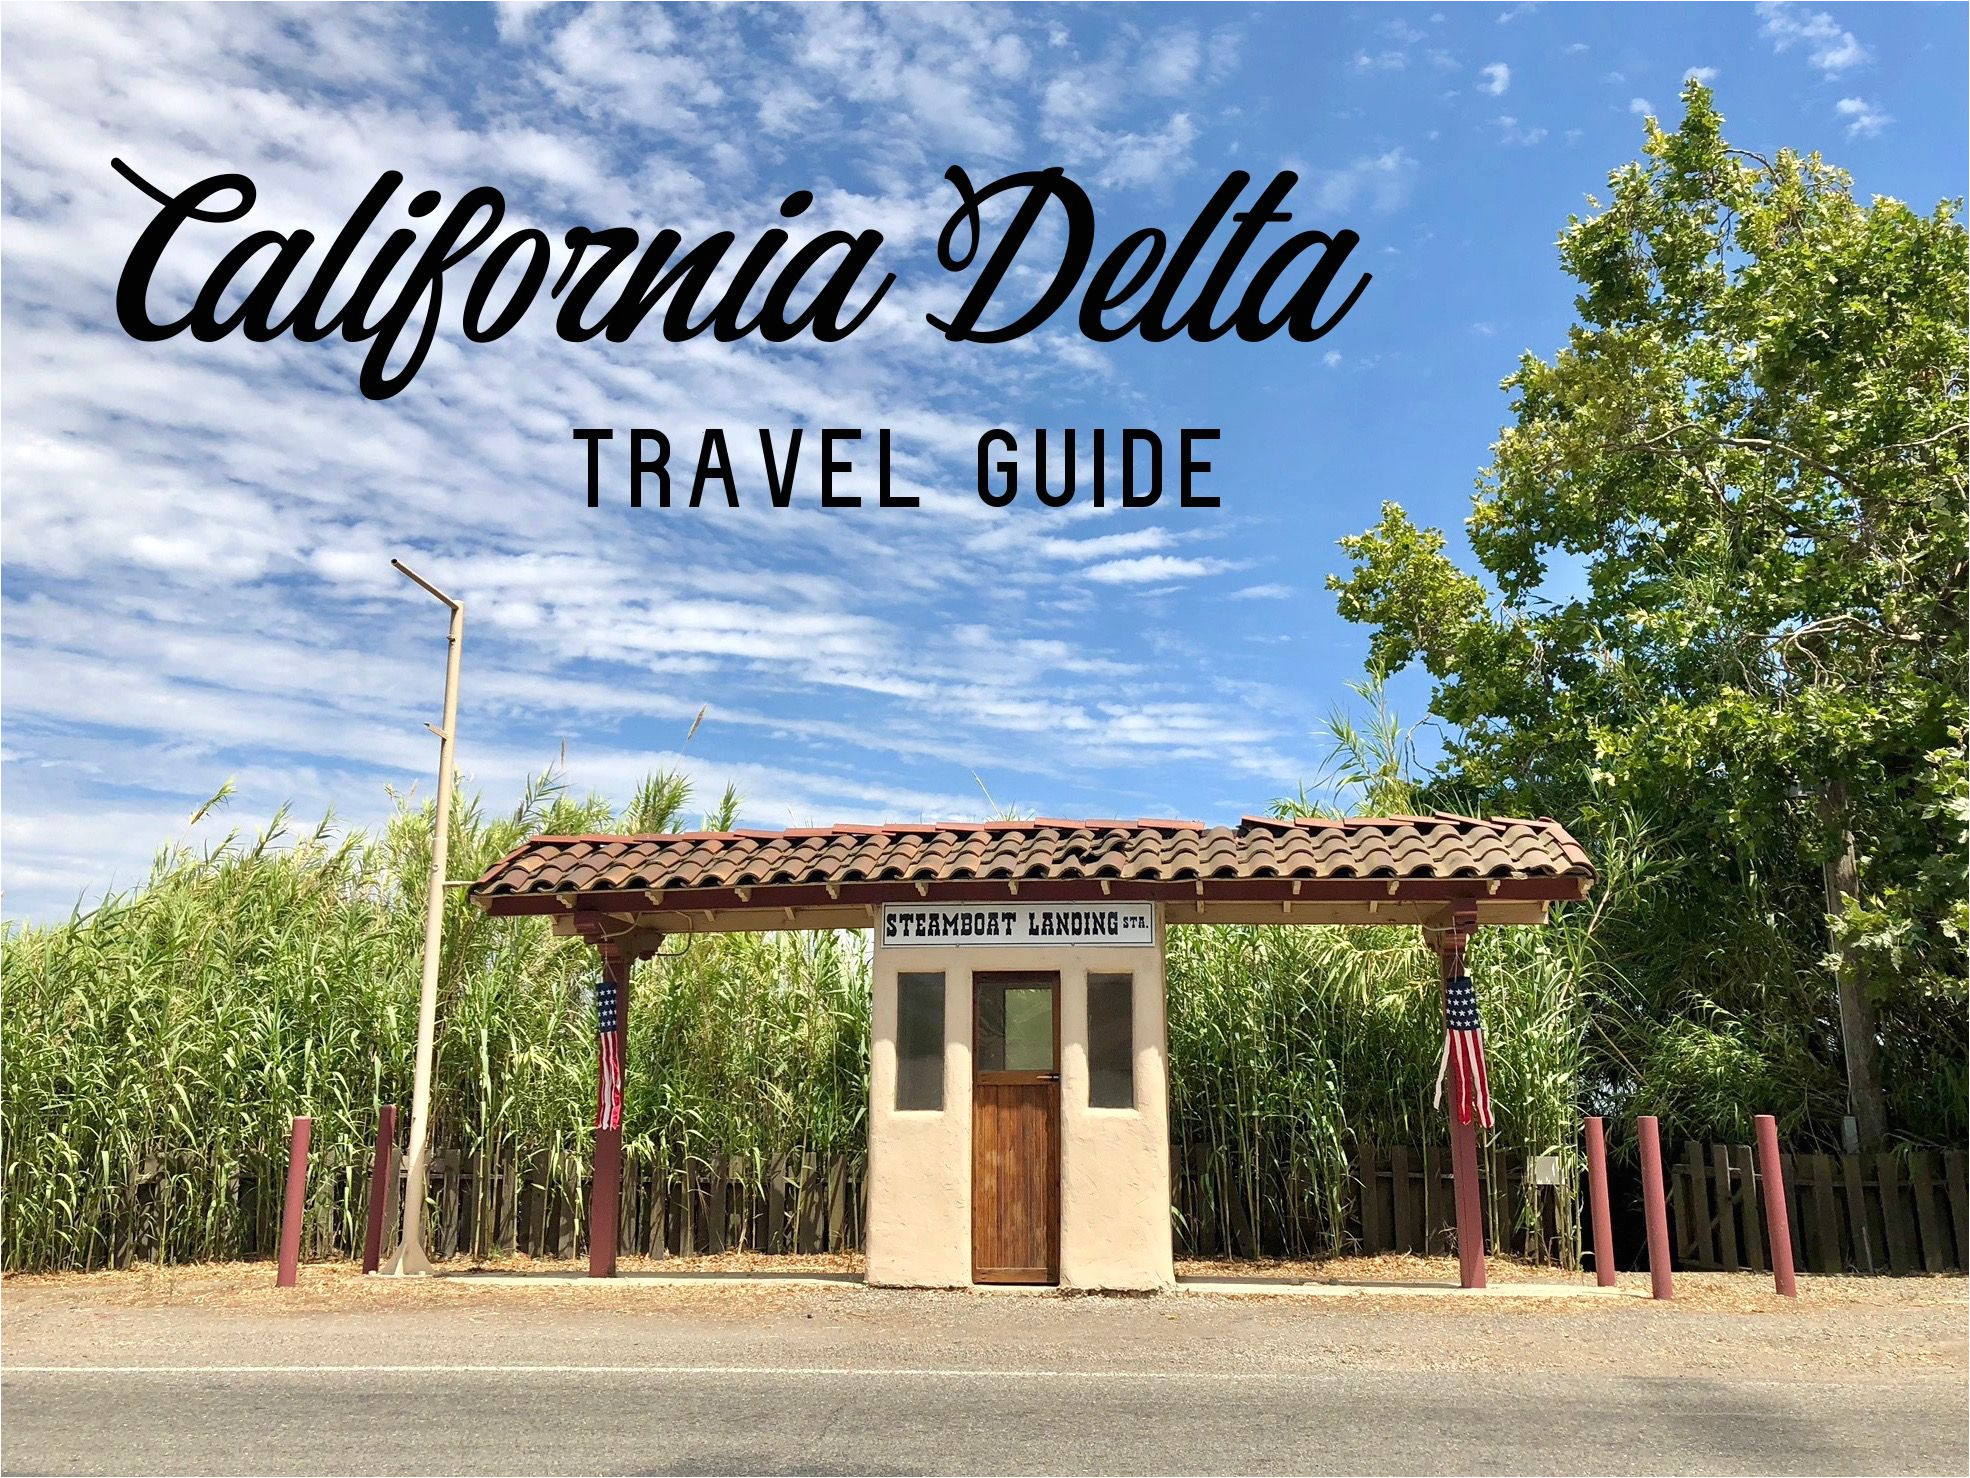 travel guide sacramento san joaquin river delta also known as the california delta